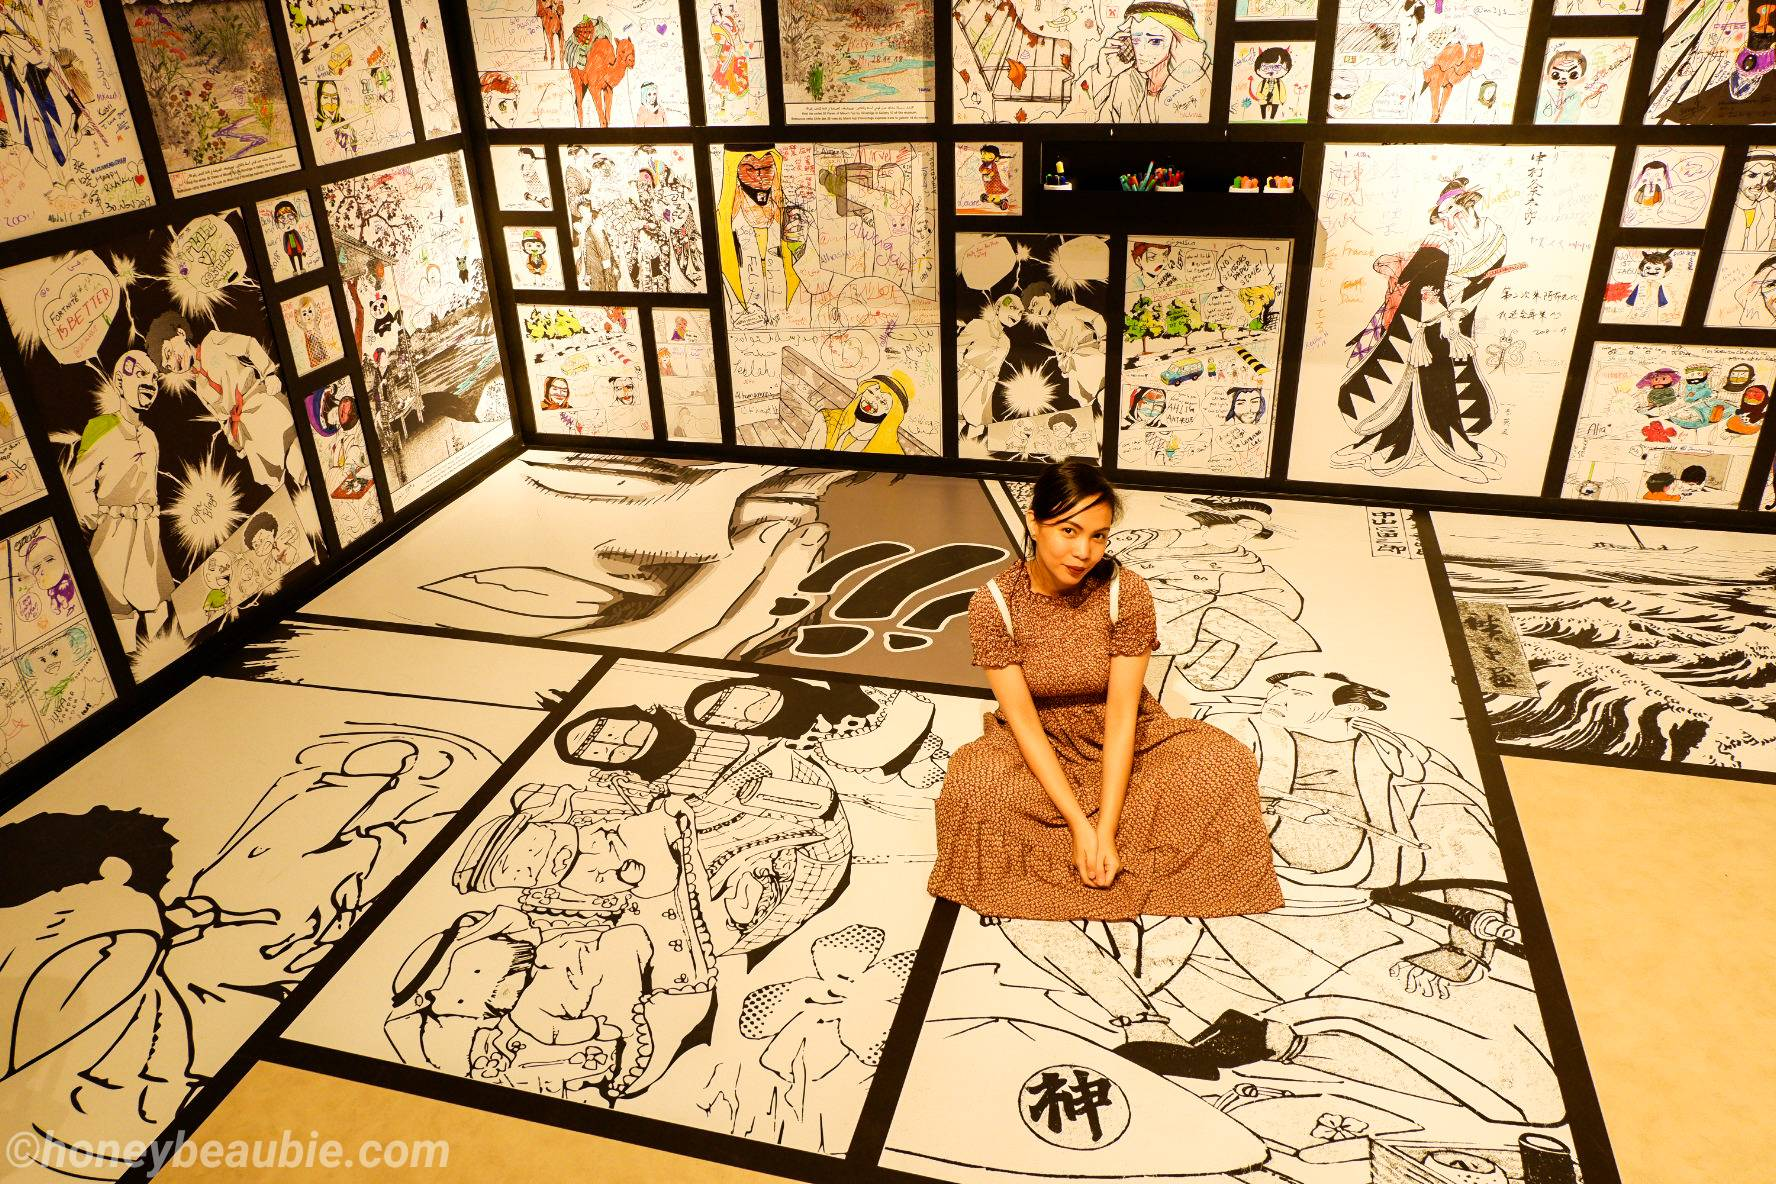 me-with-comic-wall-panels-inside-manga-lab-in-louvre-museum-abu-dhabi